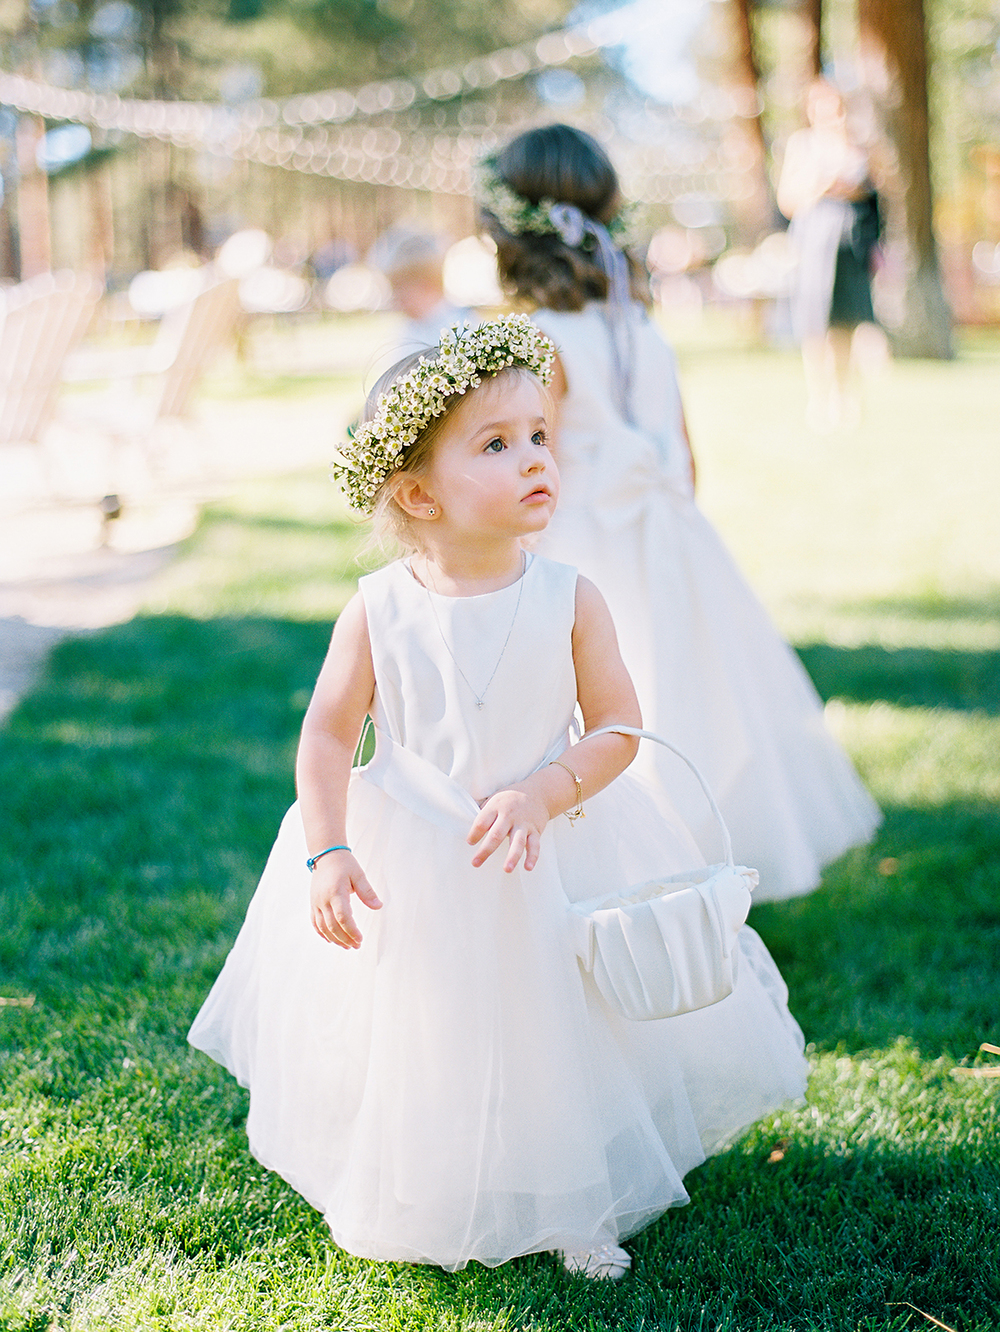 Heirloom Floral Design - Bend Oregon - Wedding - LittleOnes -sisters oregon .jpg